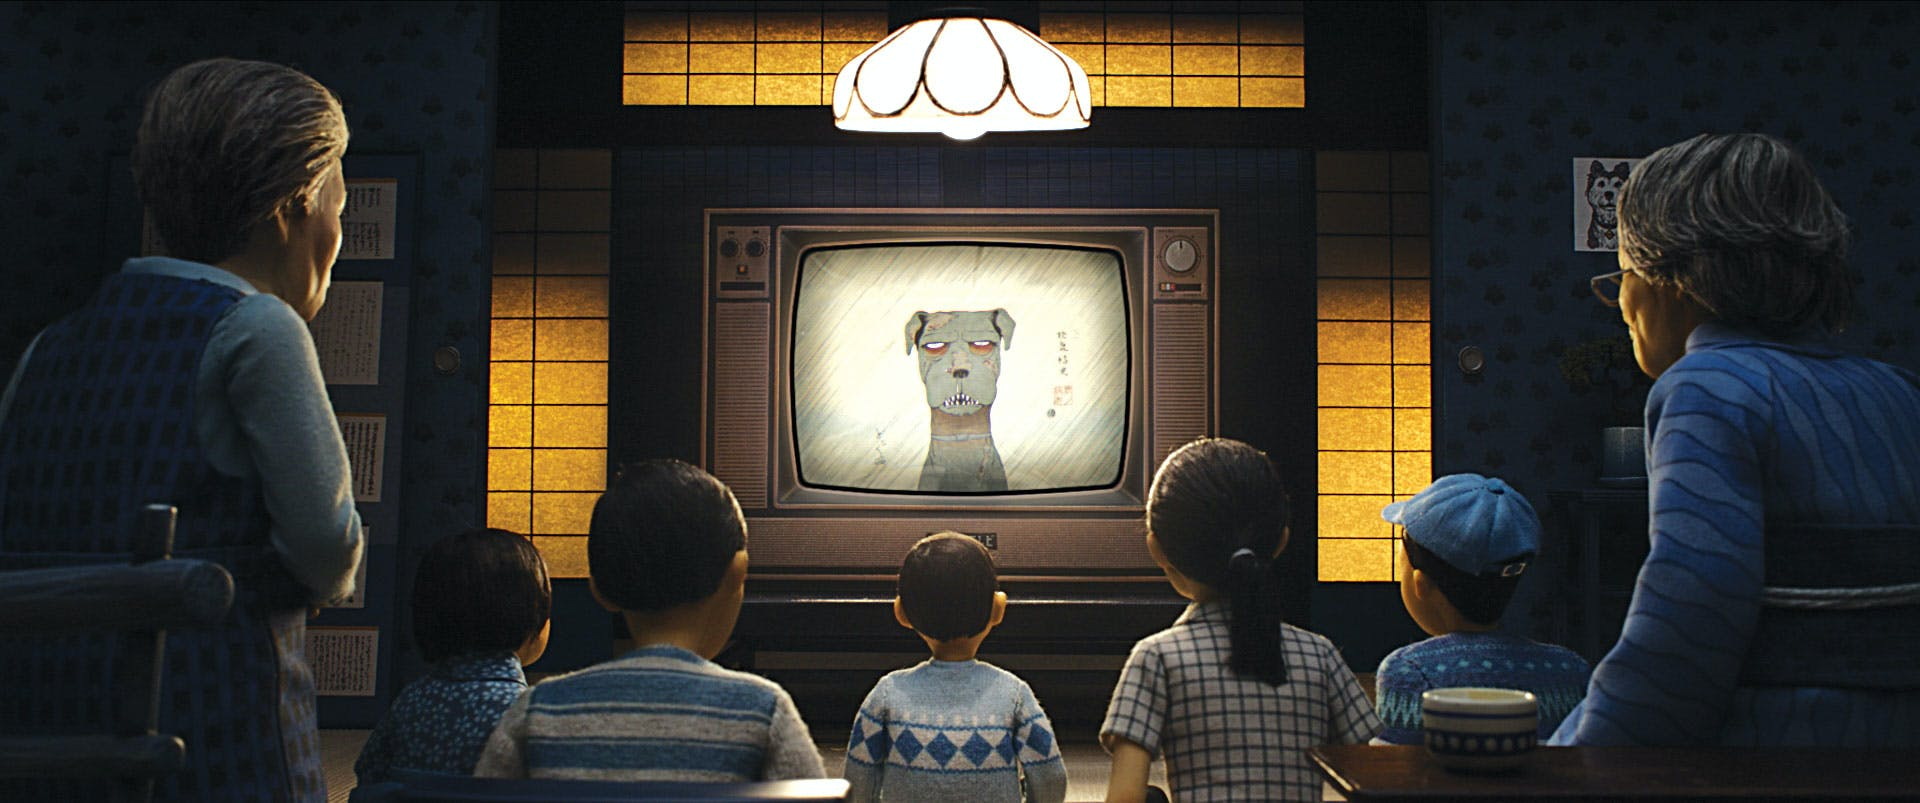 Isle of Dogs still